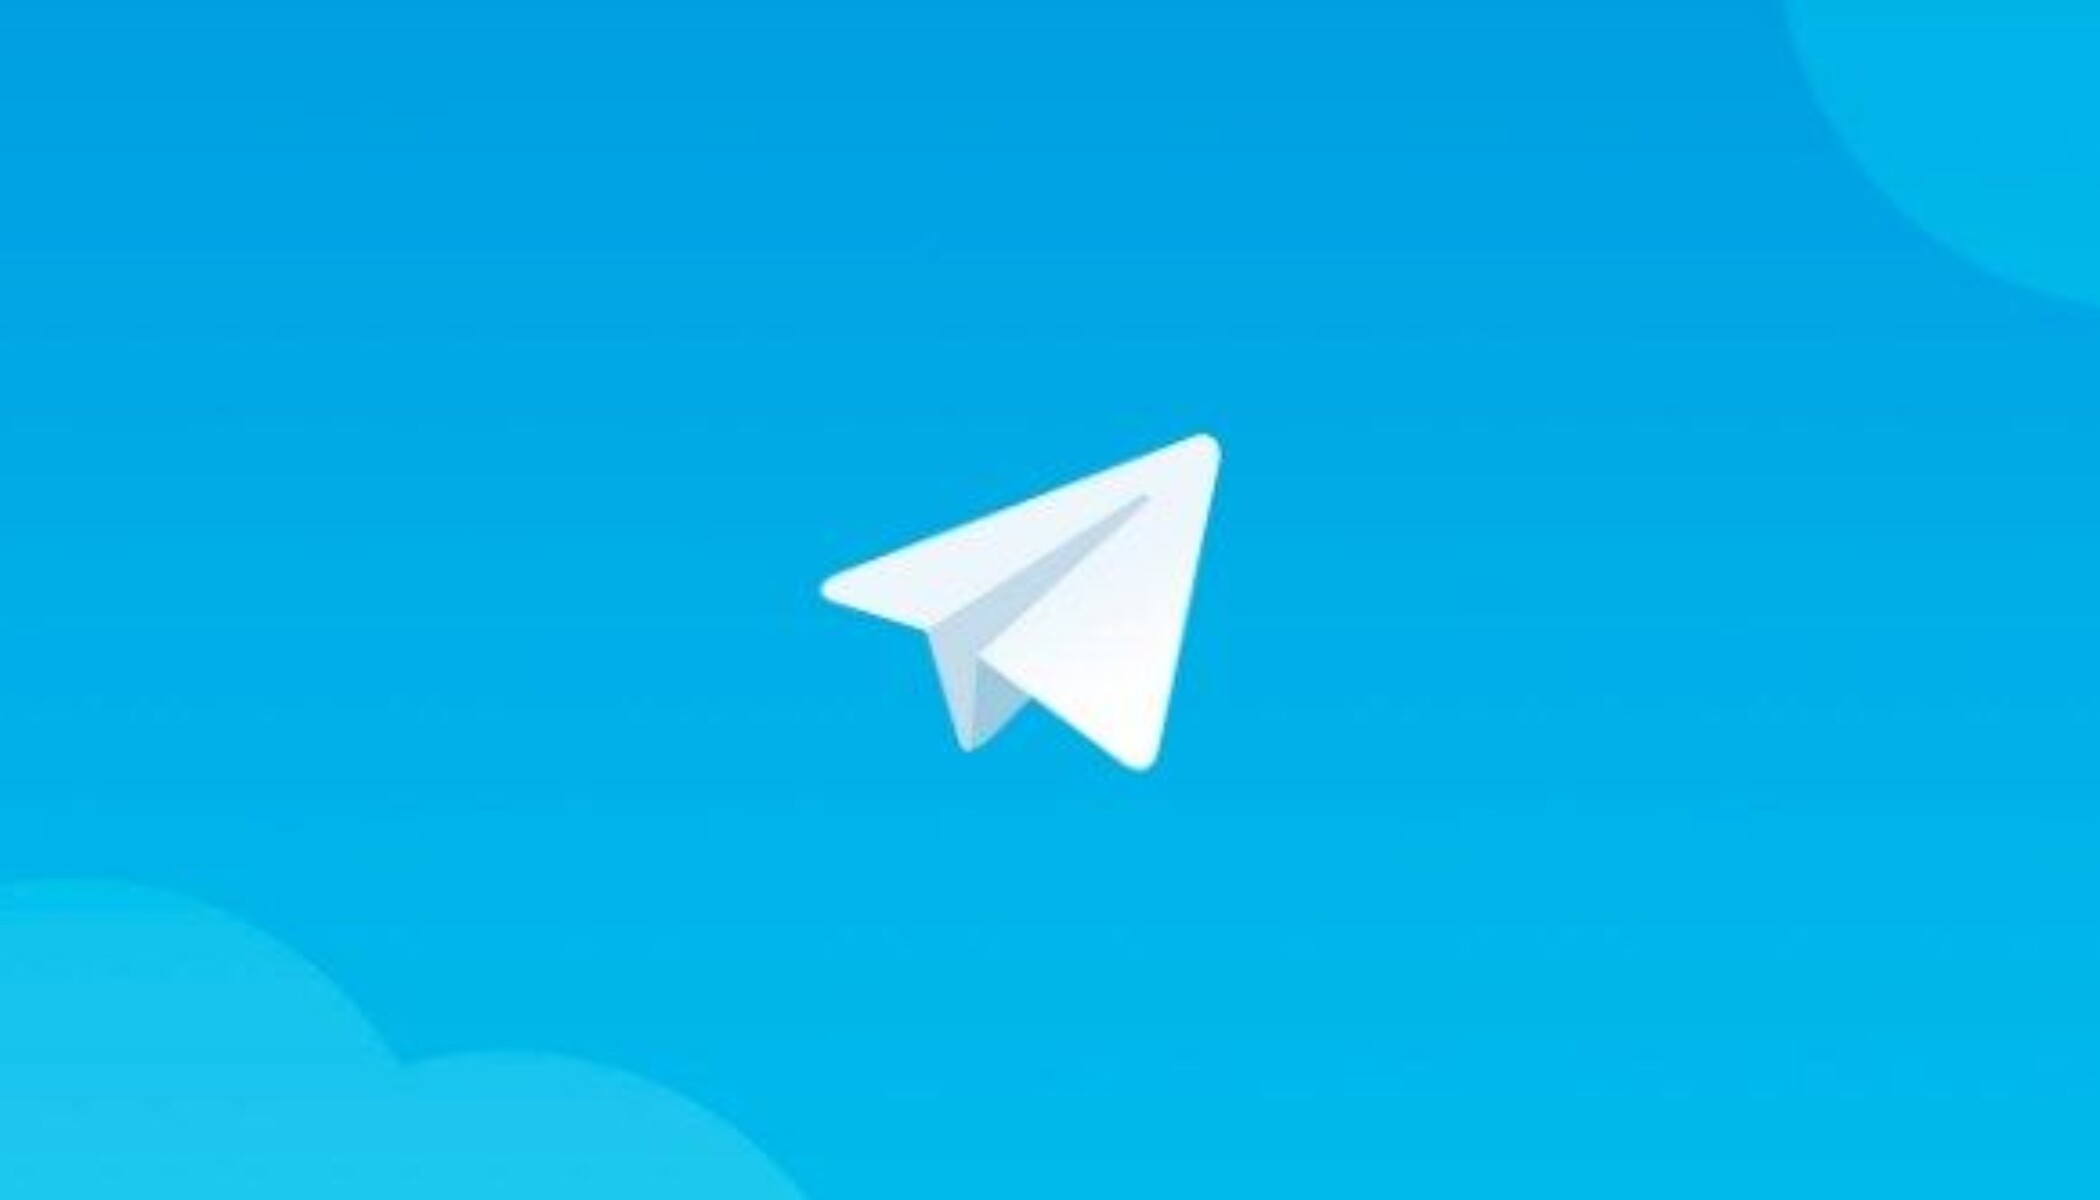 Telegram Finally Brings The Long-Awaited Group Video Calling Feature